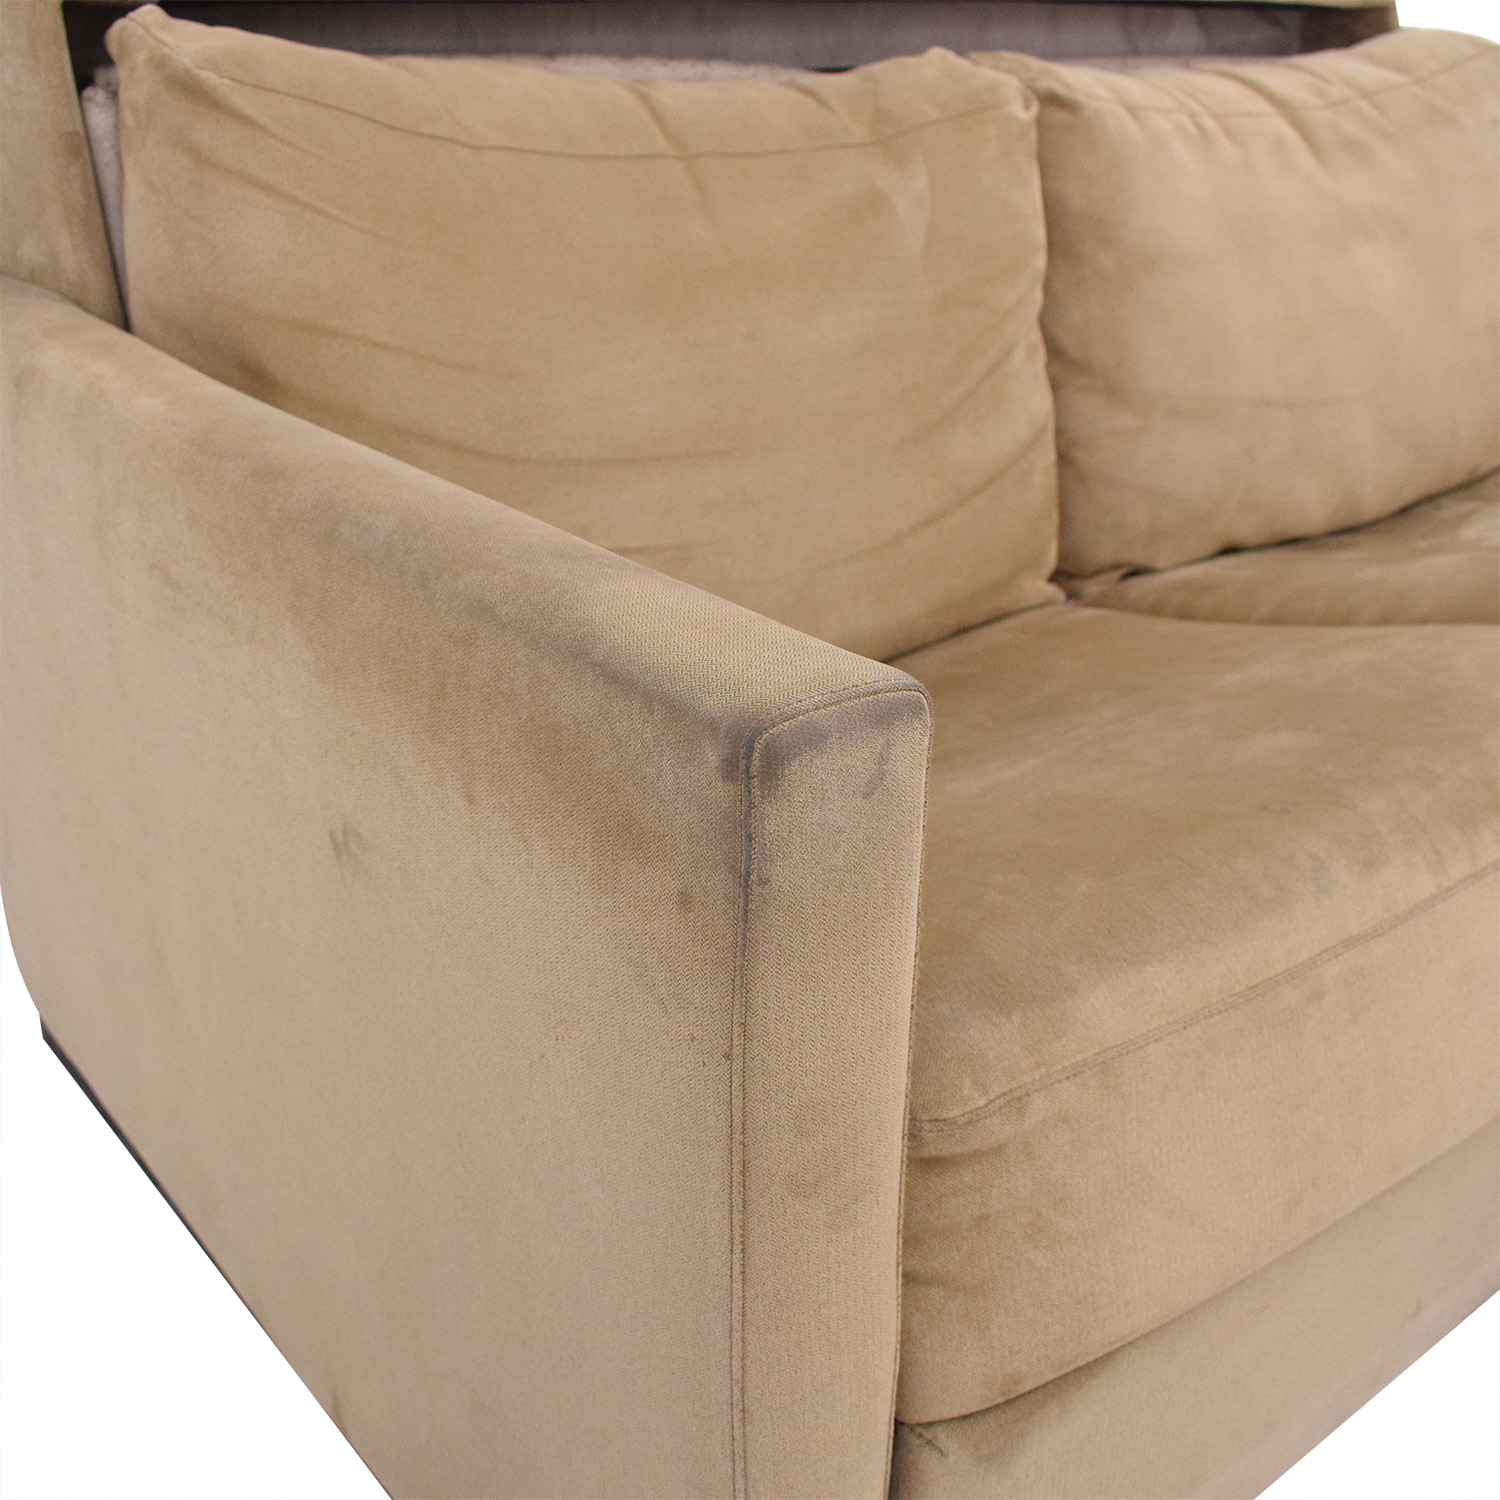 American Leather American Leather Patterson Sleeper Sofa with Ottoman price